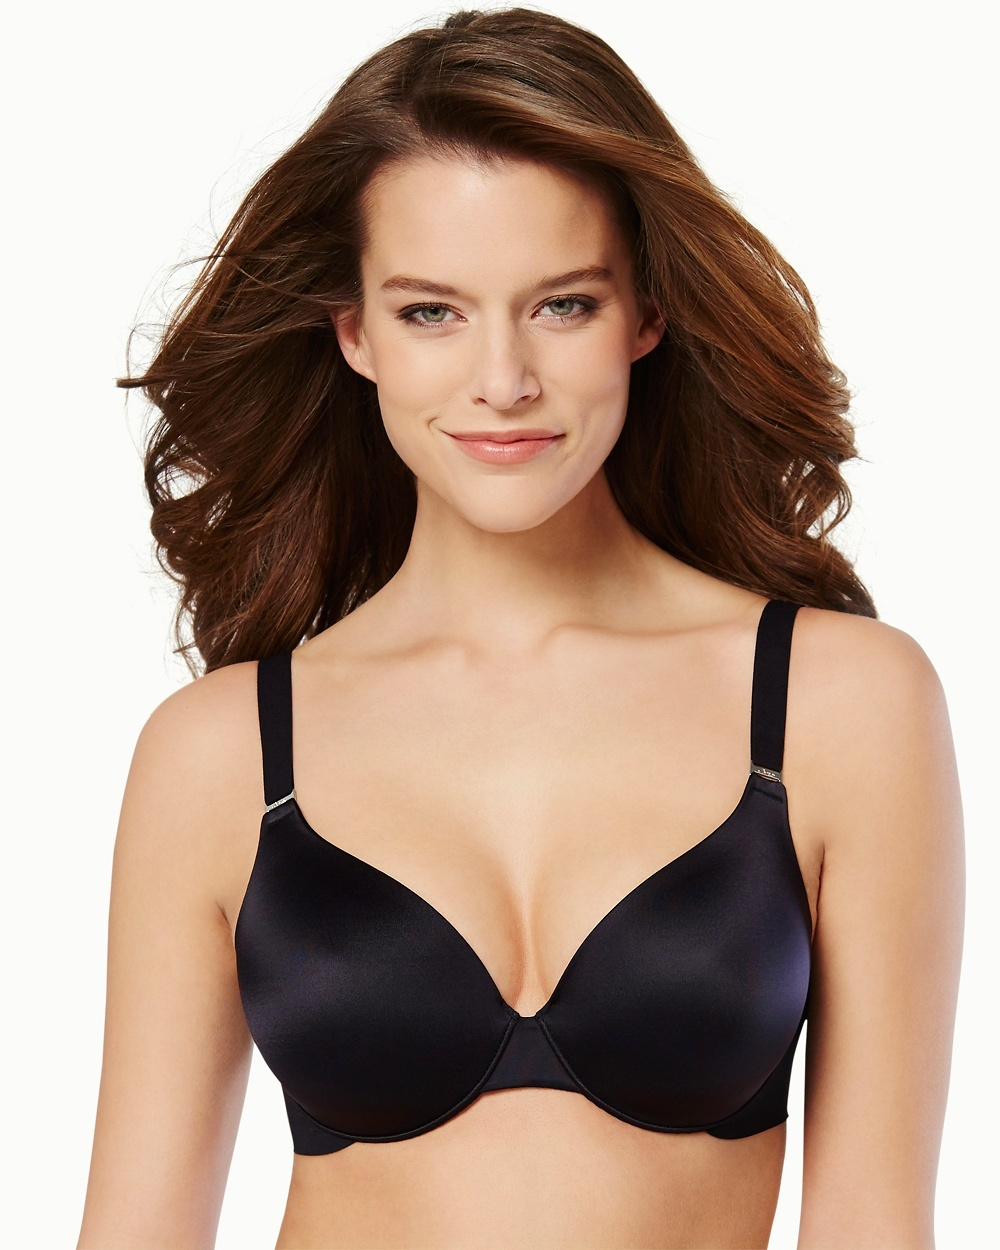 Every Kind of Full Coverage Bra and How to Wear Them